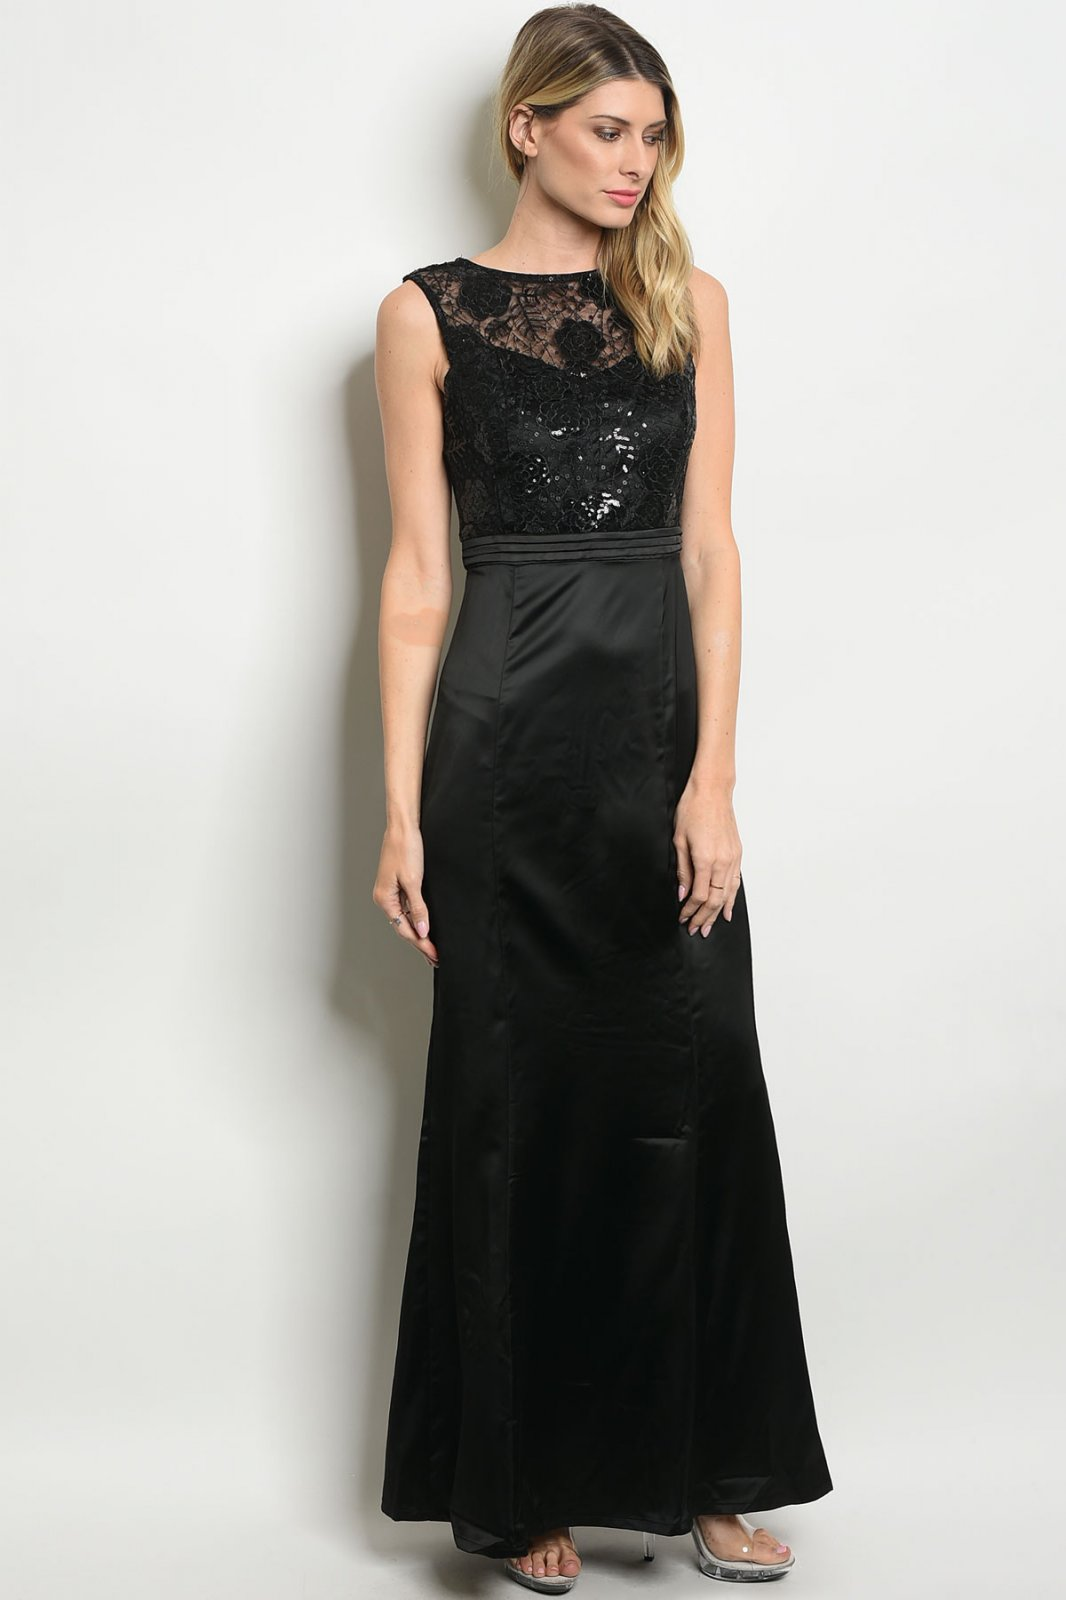 Black Formal Gown With Sequins Embellished Lace Top